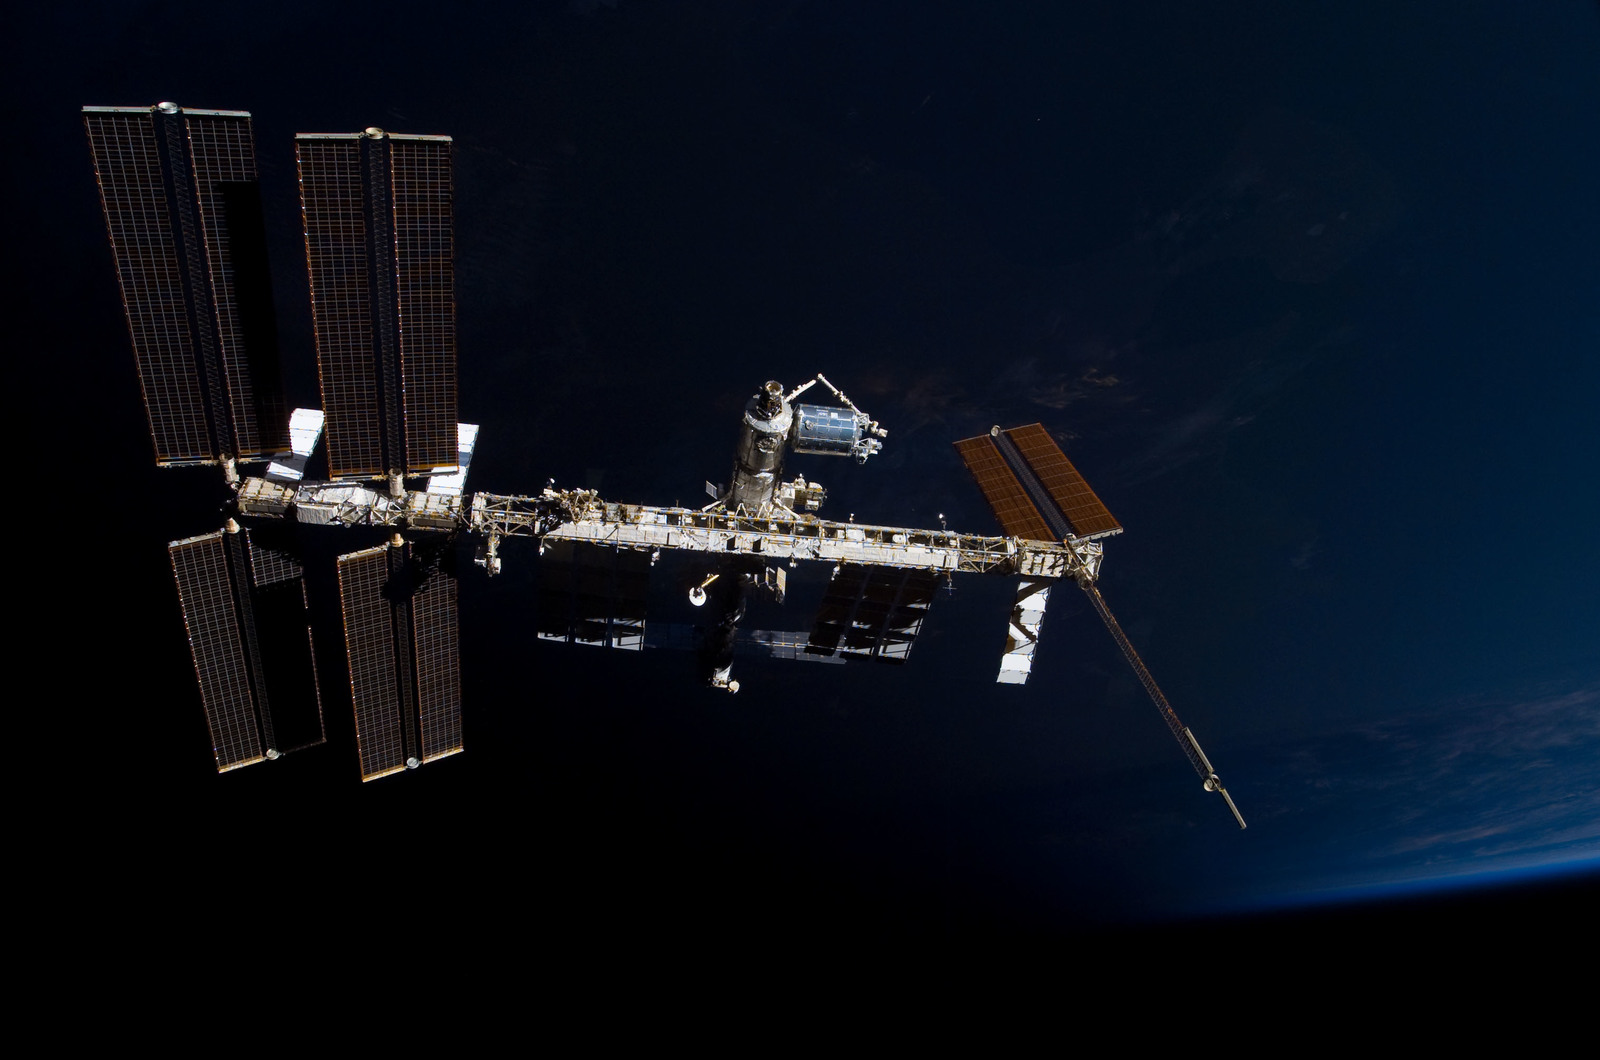 S122E009871 - STS-122 - View of ISS after STS-122 Undocking